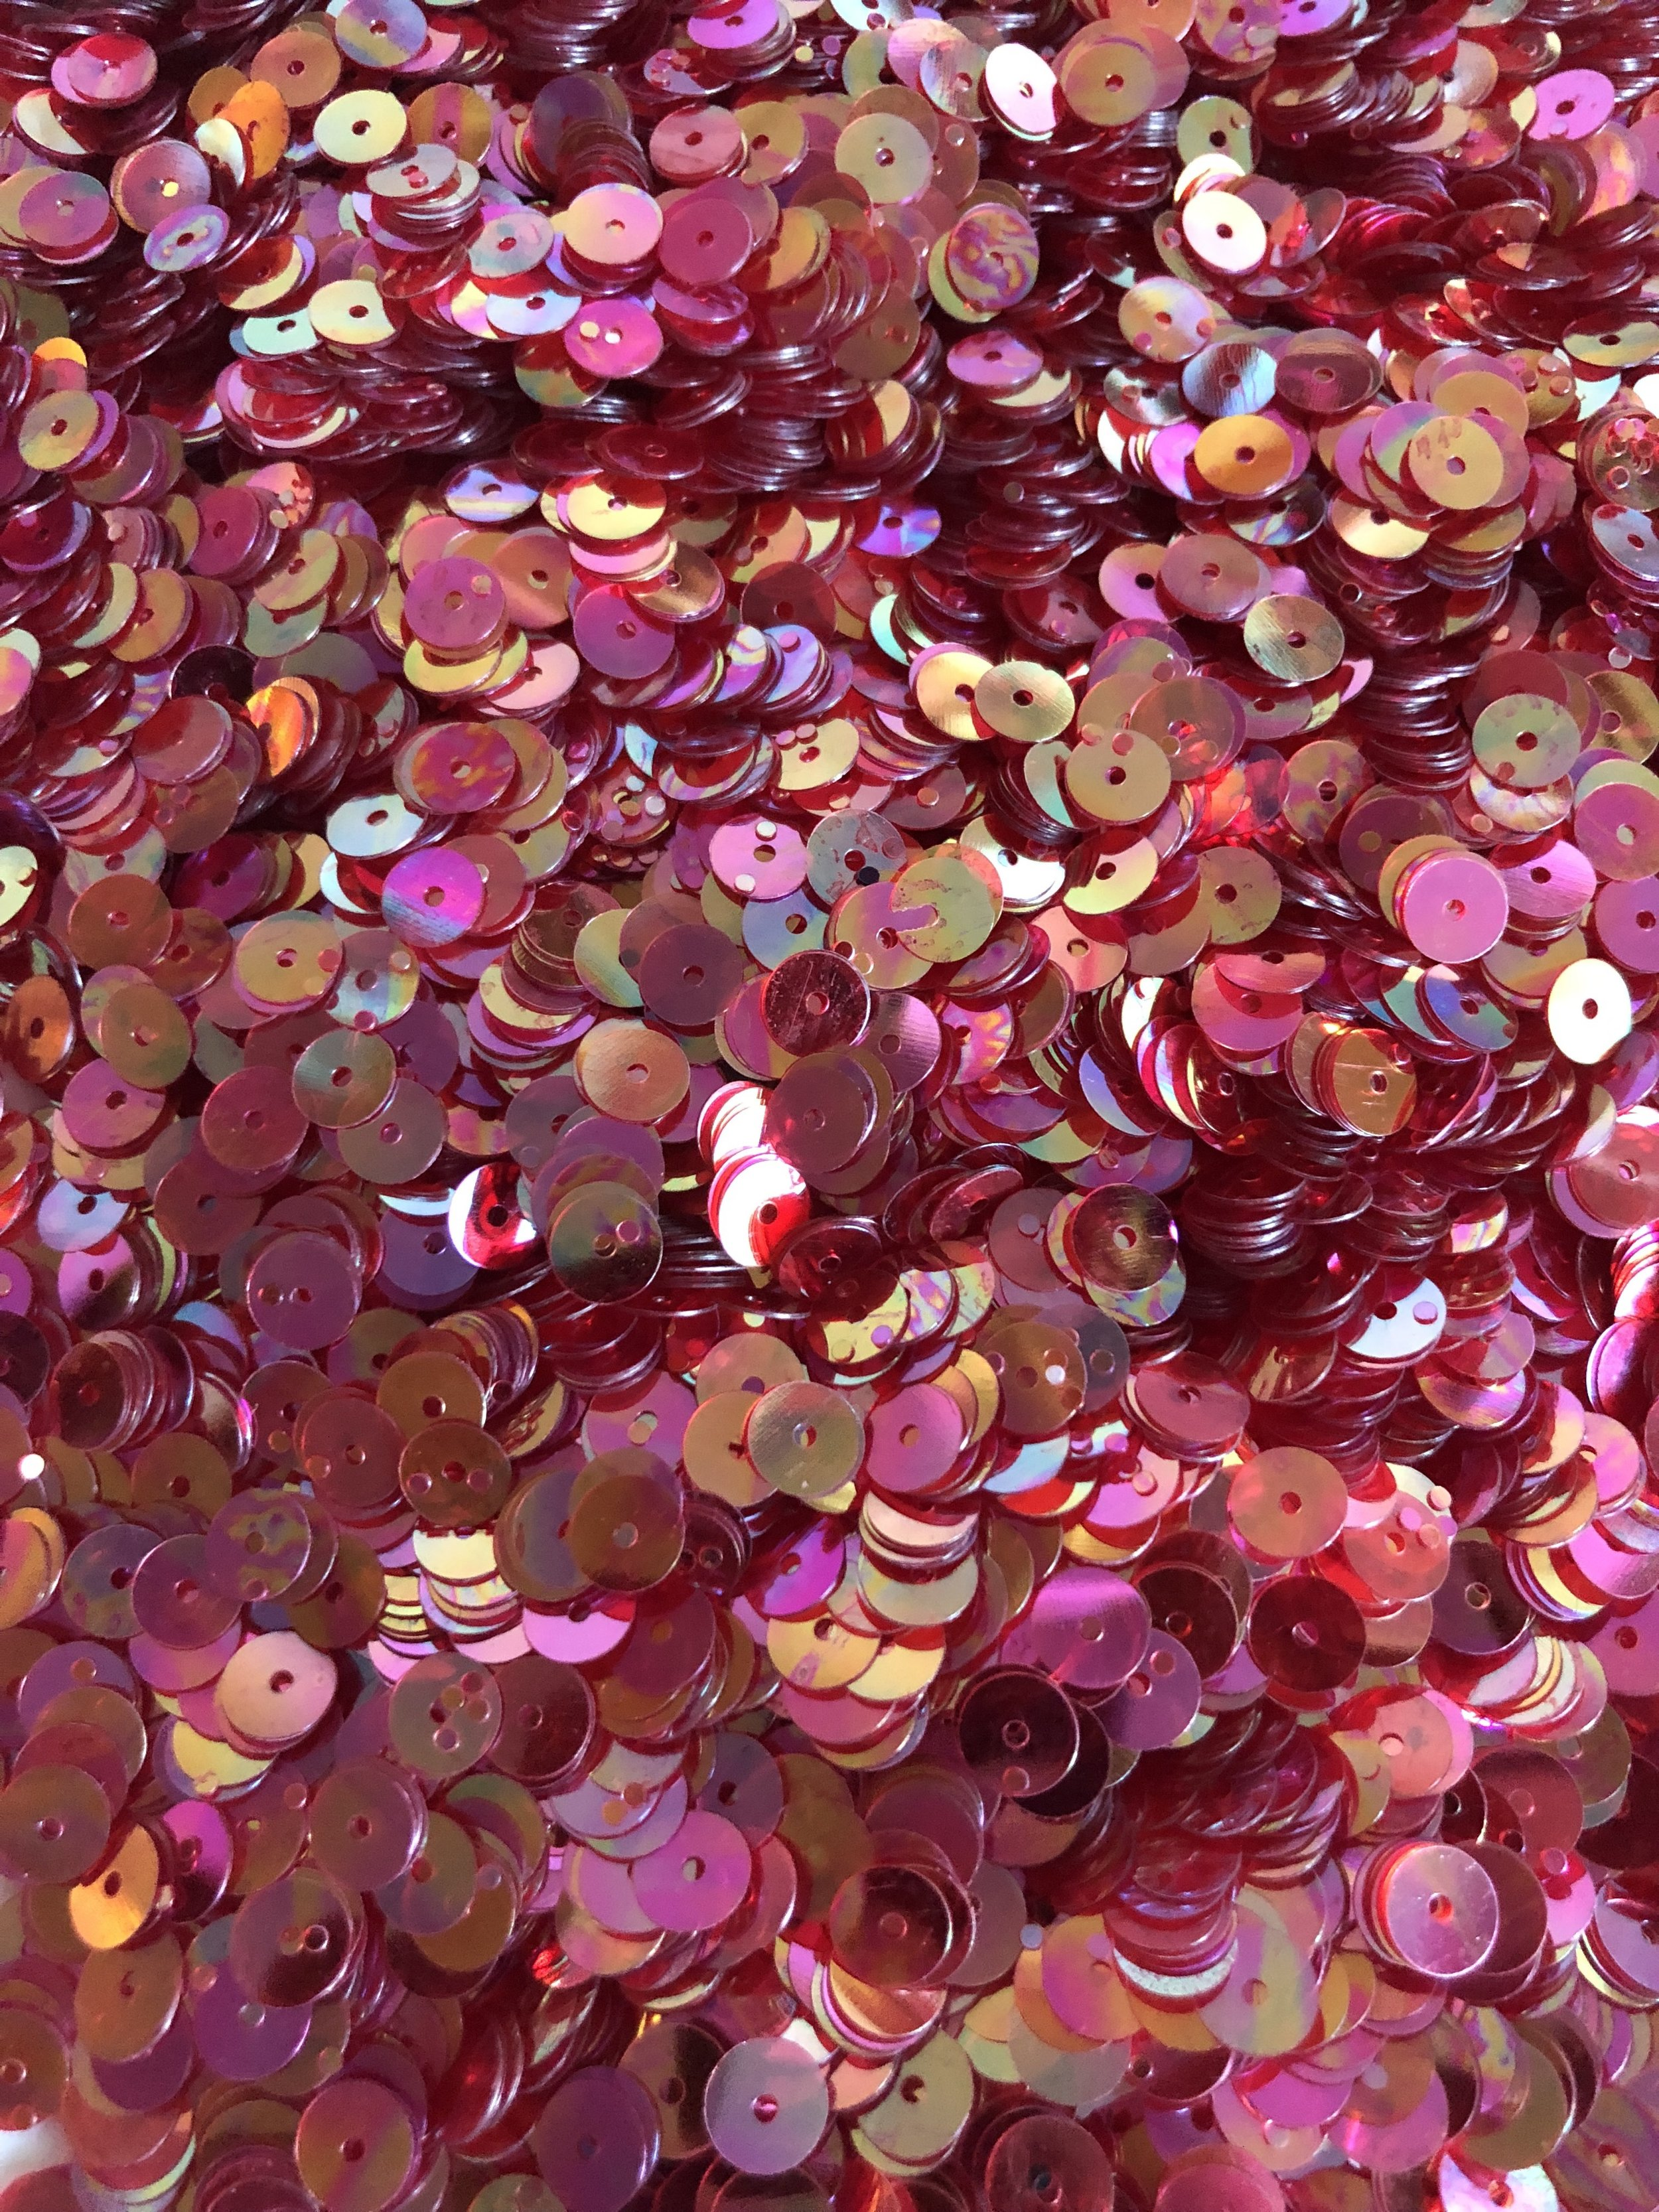 6mm Flat Sequins Iridescent Red/Yellow - Bulk Loose Sequins (1/4 Pound)